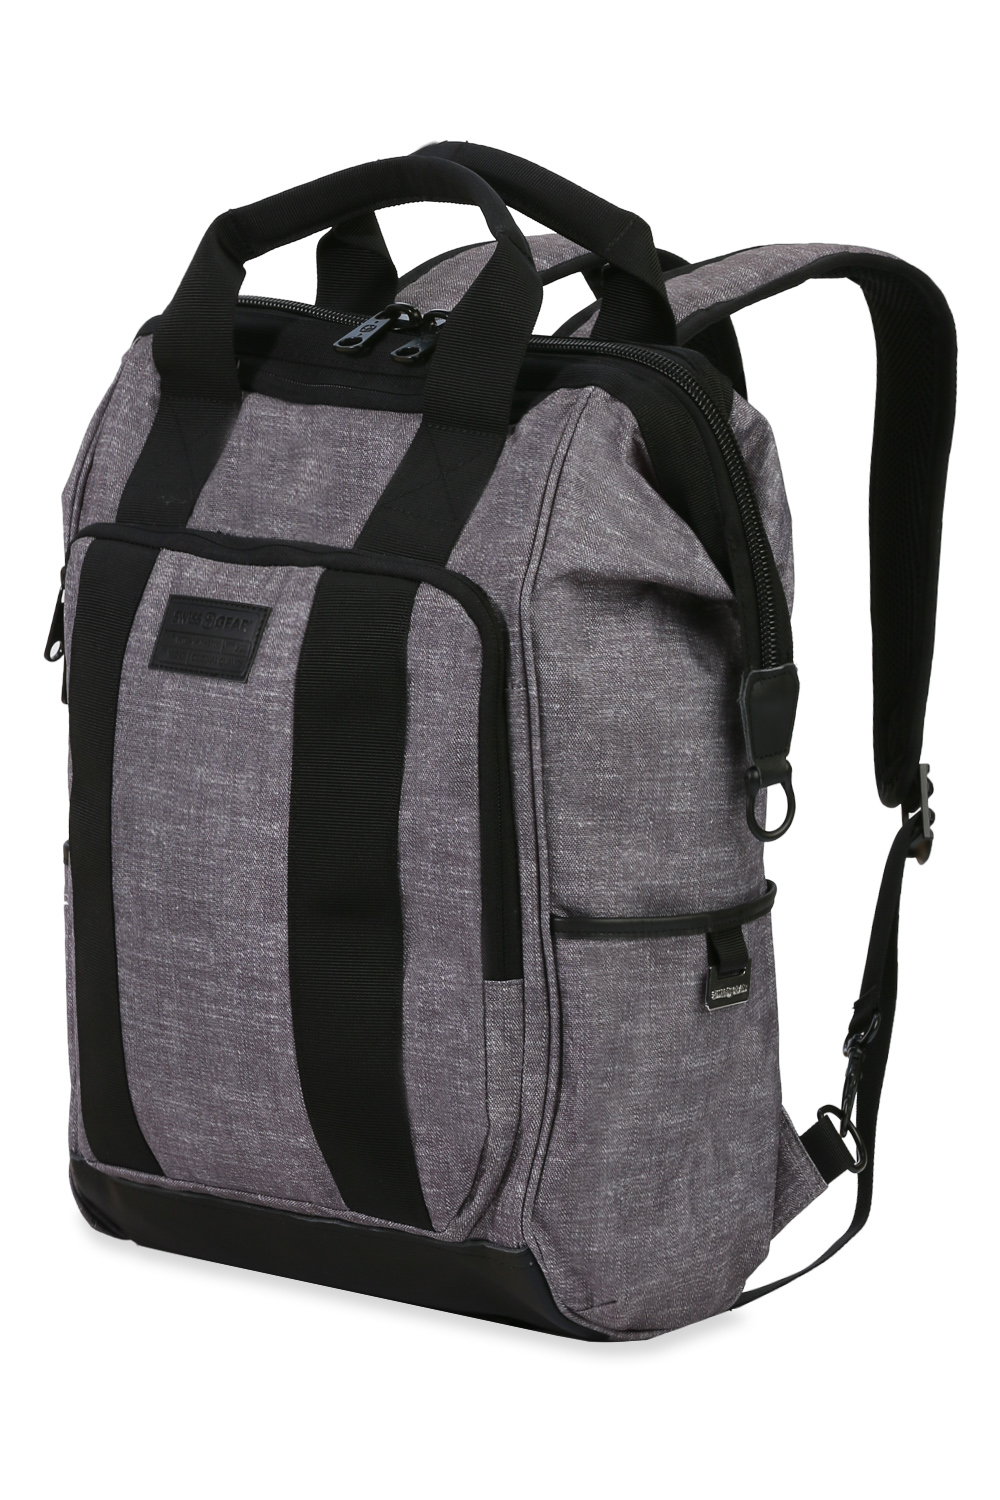 ac8e8688362c Backpack With Side Straps- Fenix Toulouse Handball